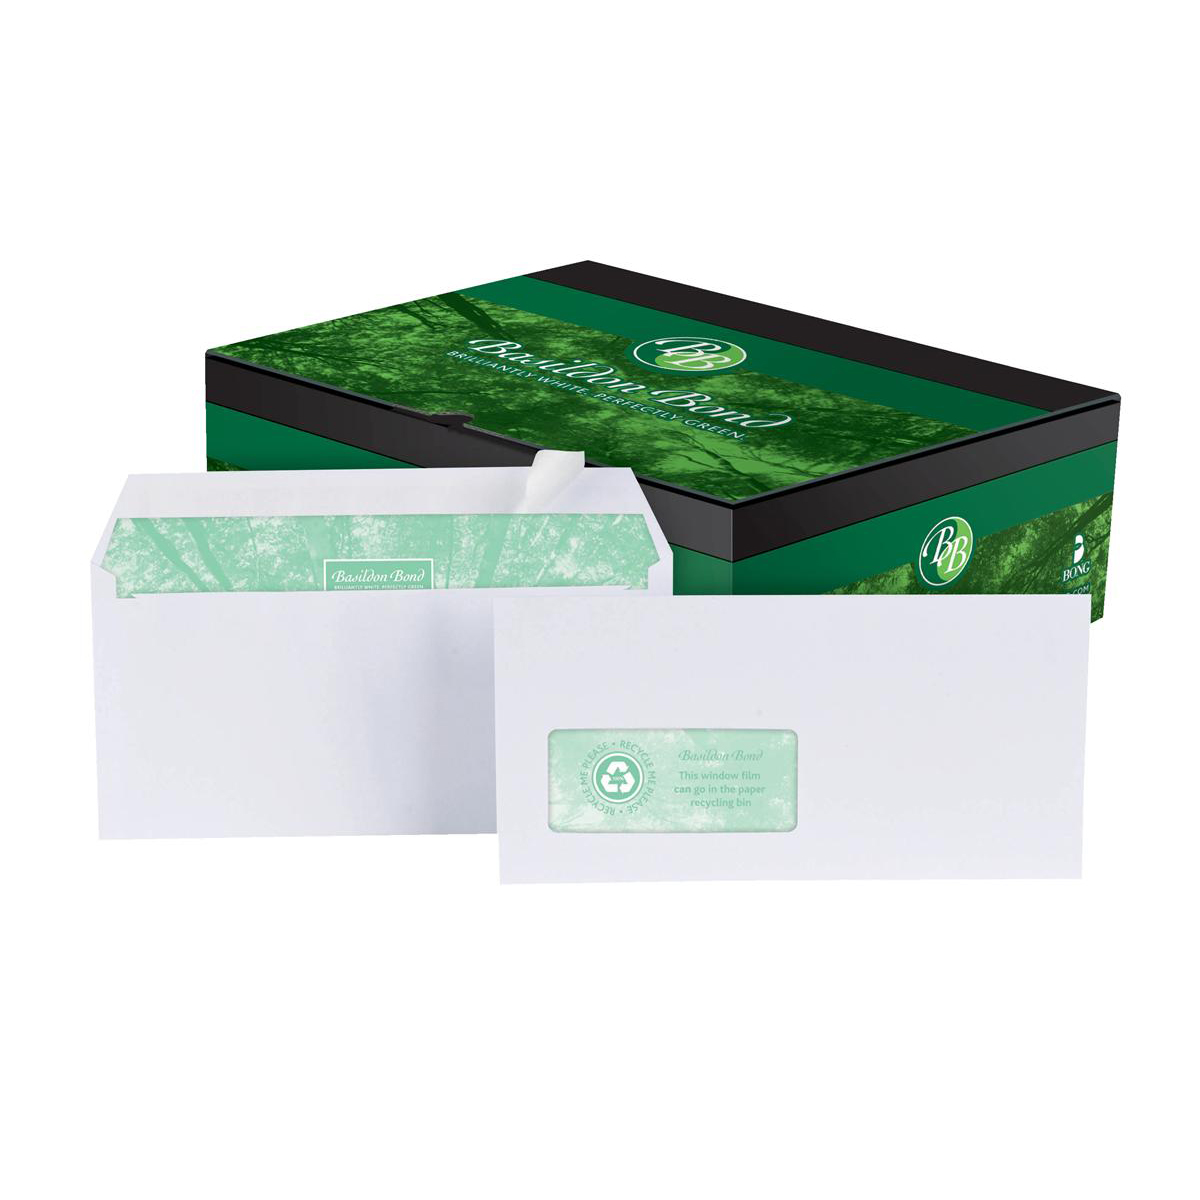 Basildon Bond Envelopes Recycled Wallet P&S Window 120gsm DL White Ref A80117 Pack 500